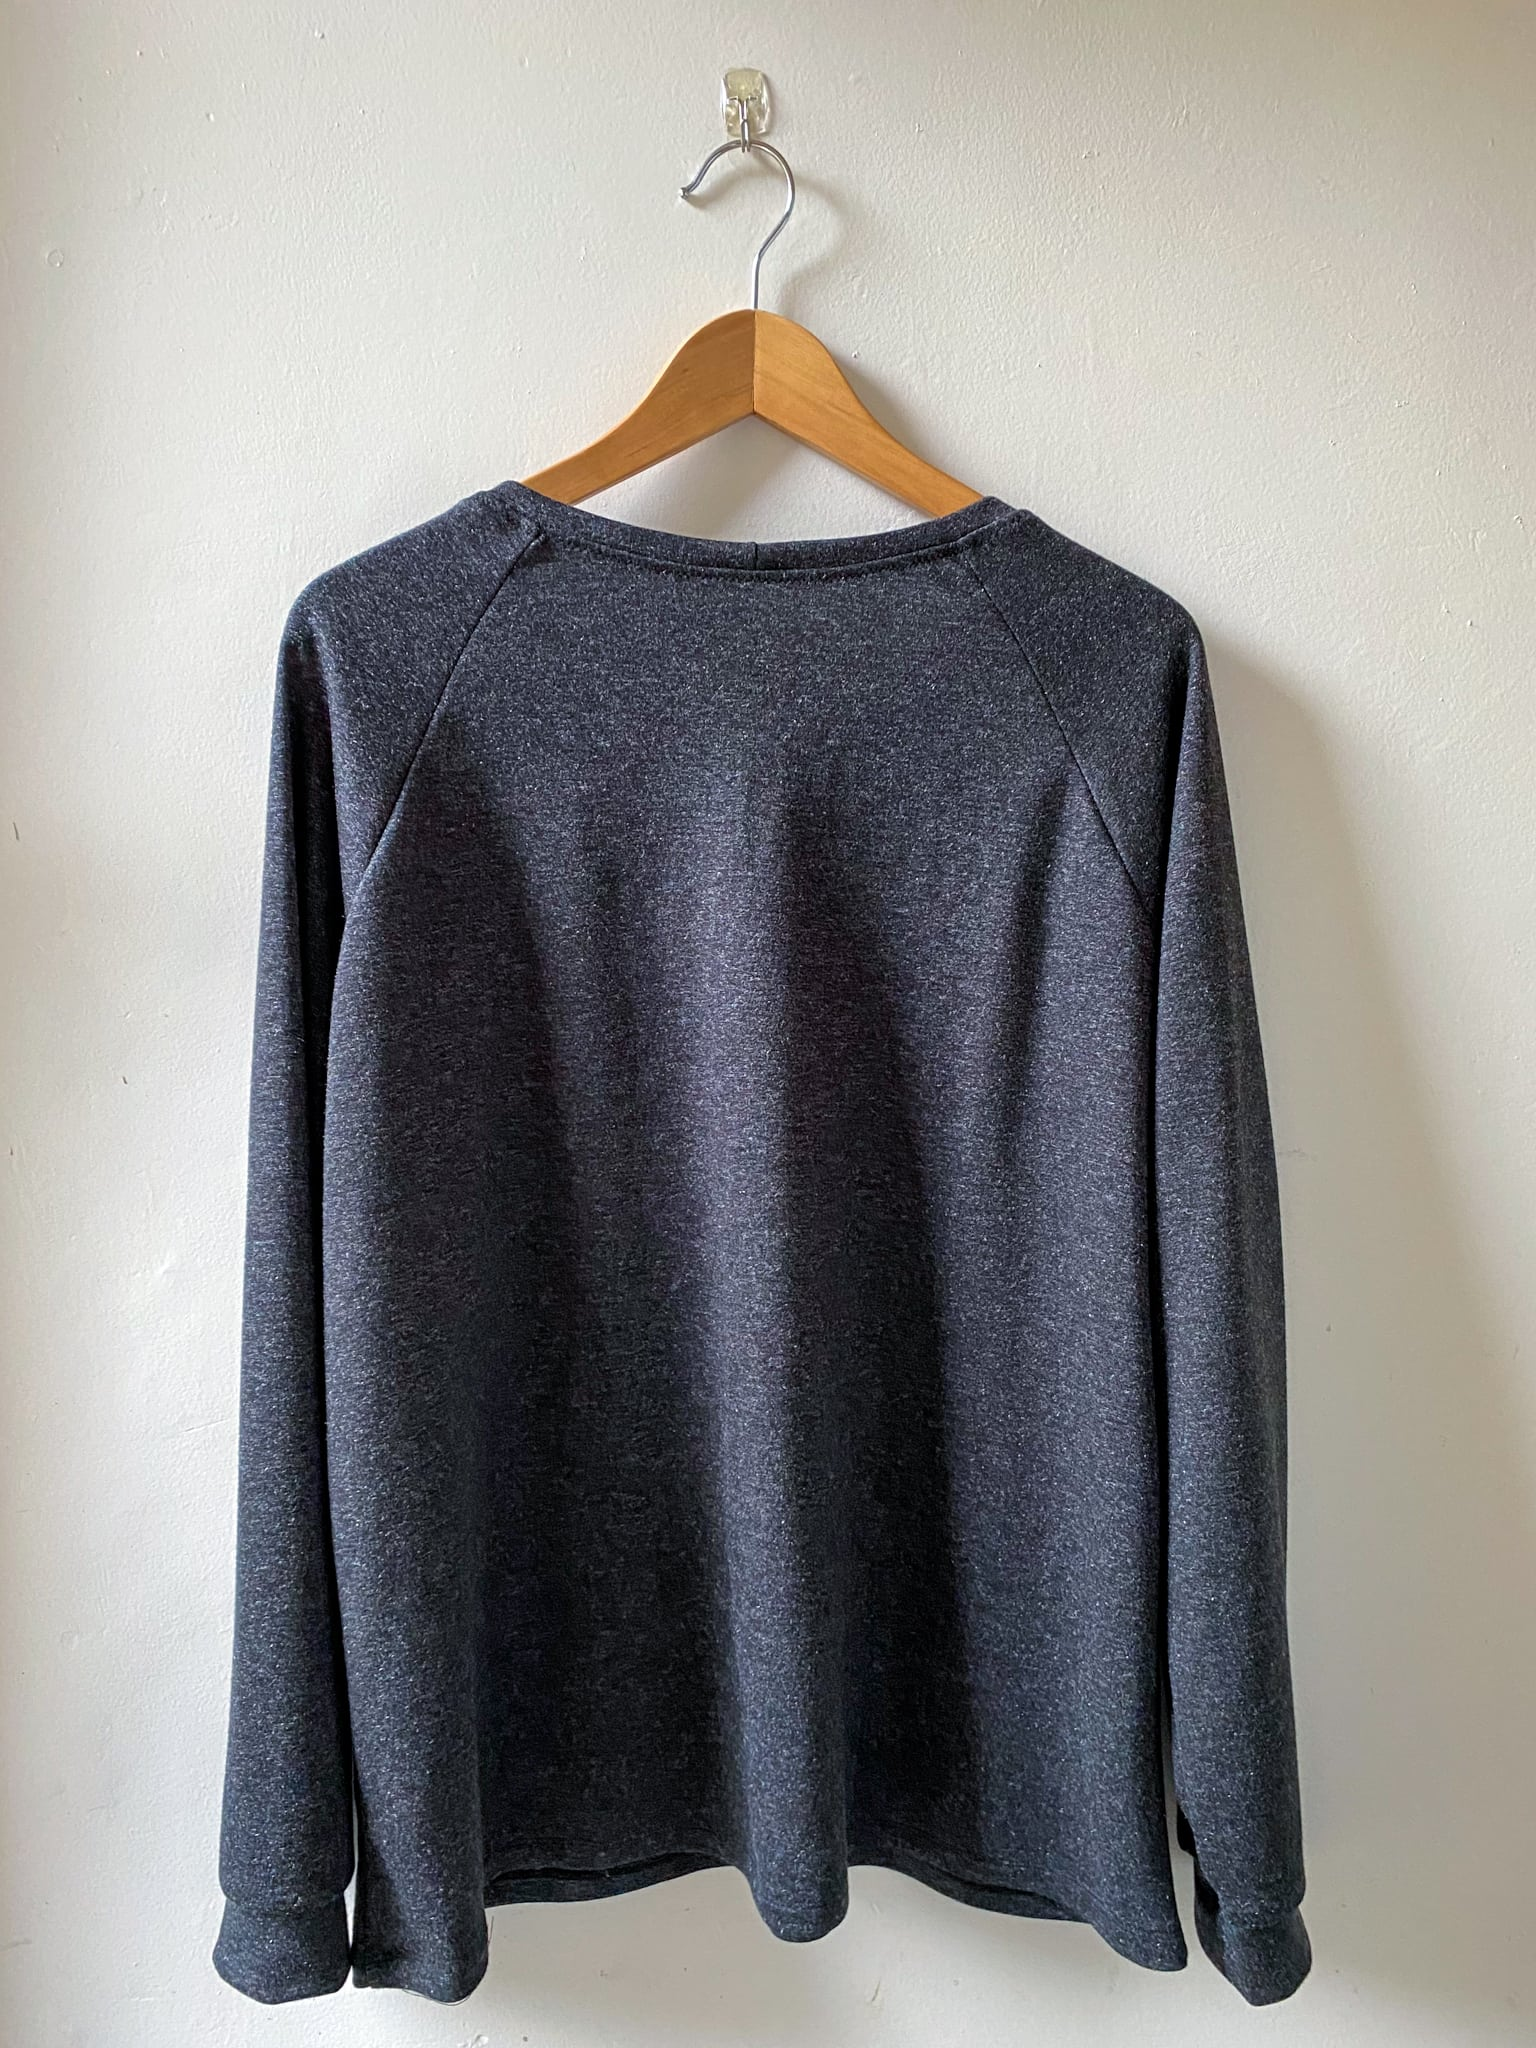 Image of the back of a dark gray Grainline Linden hanging from a hanger against a white background